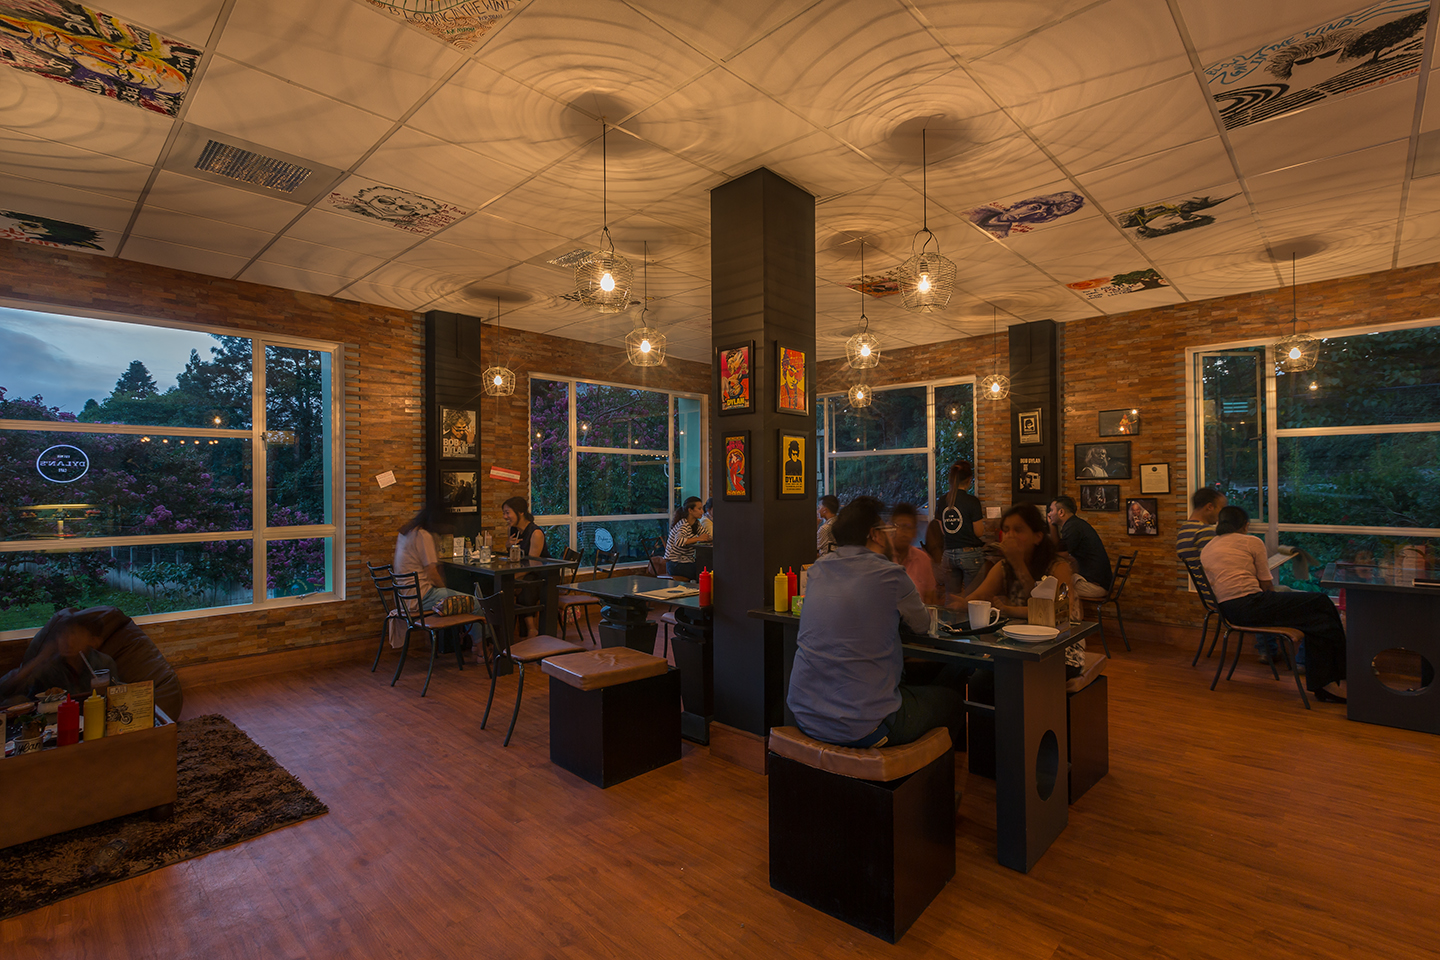 RootsandLeisure_DylansCafeShillong (4)